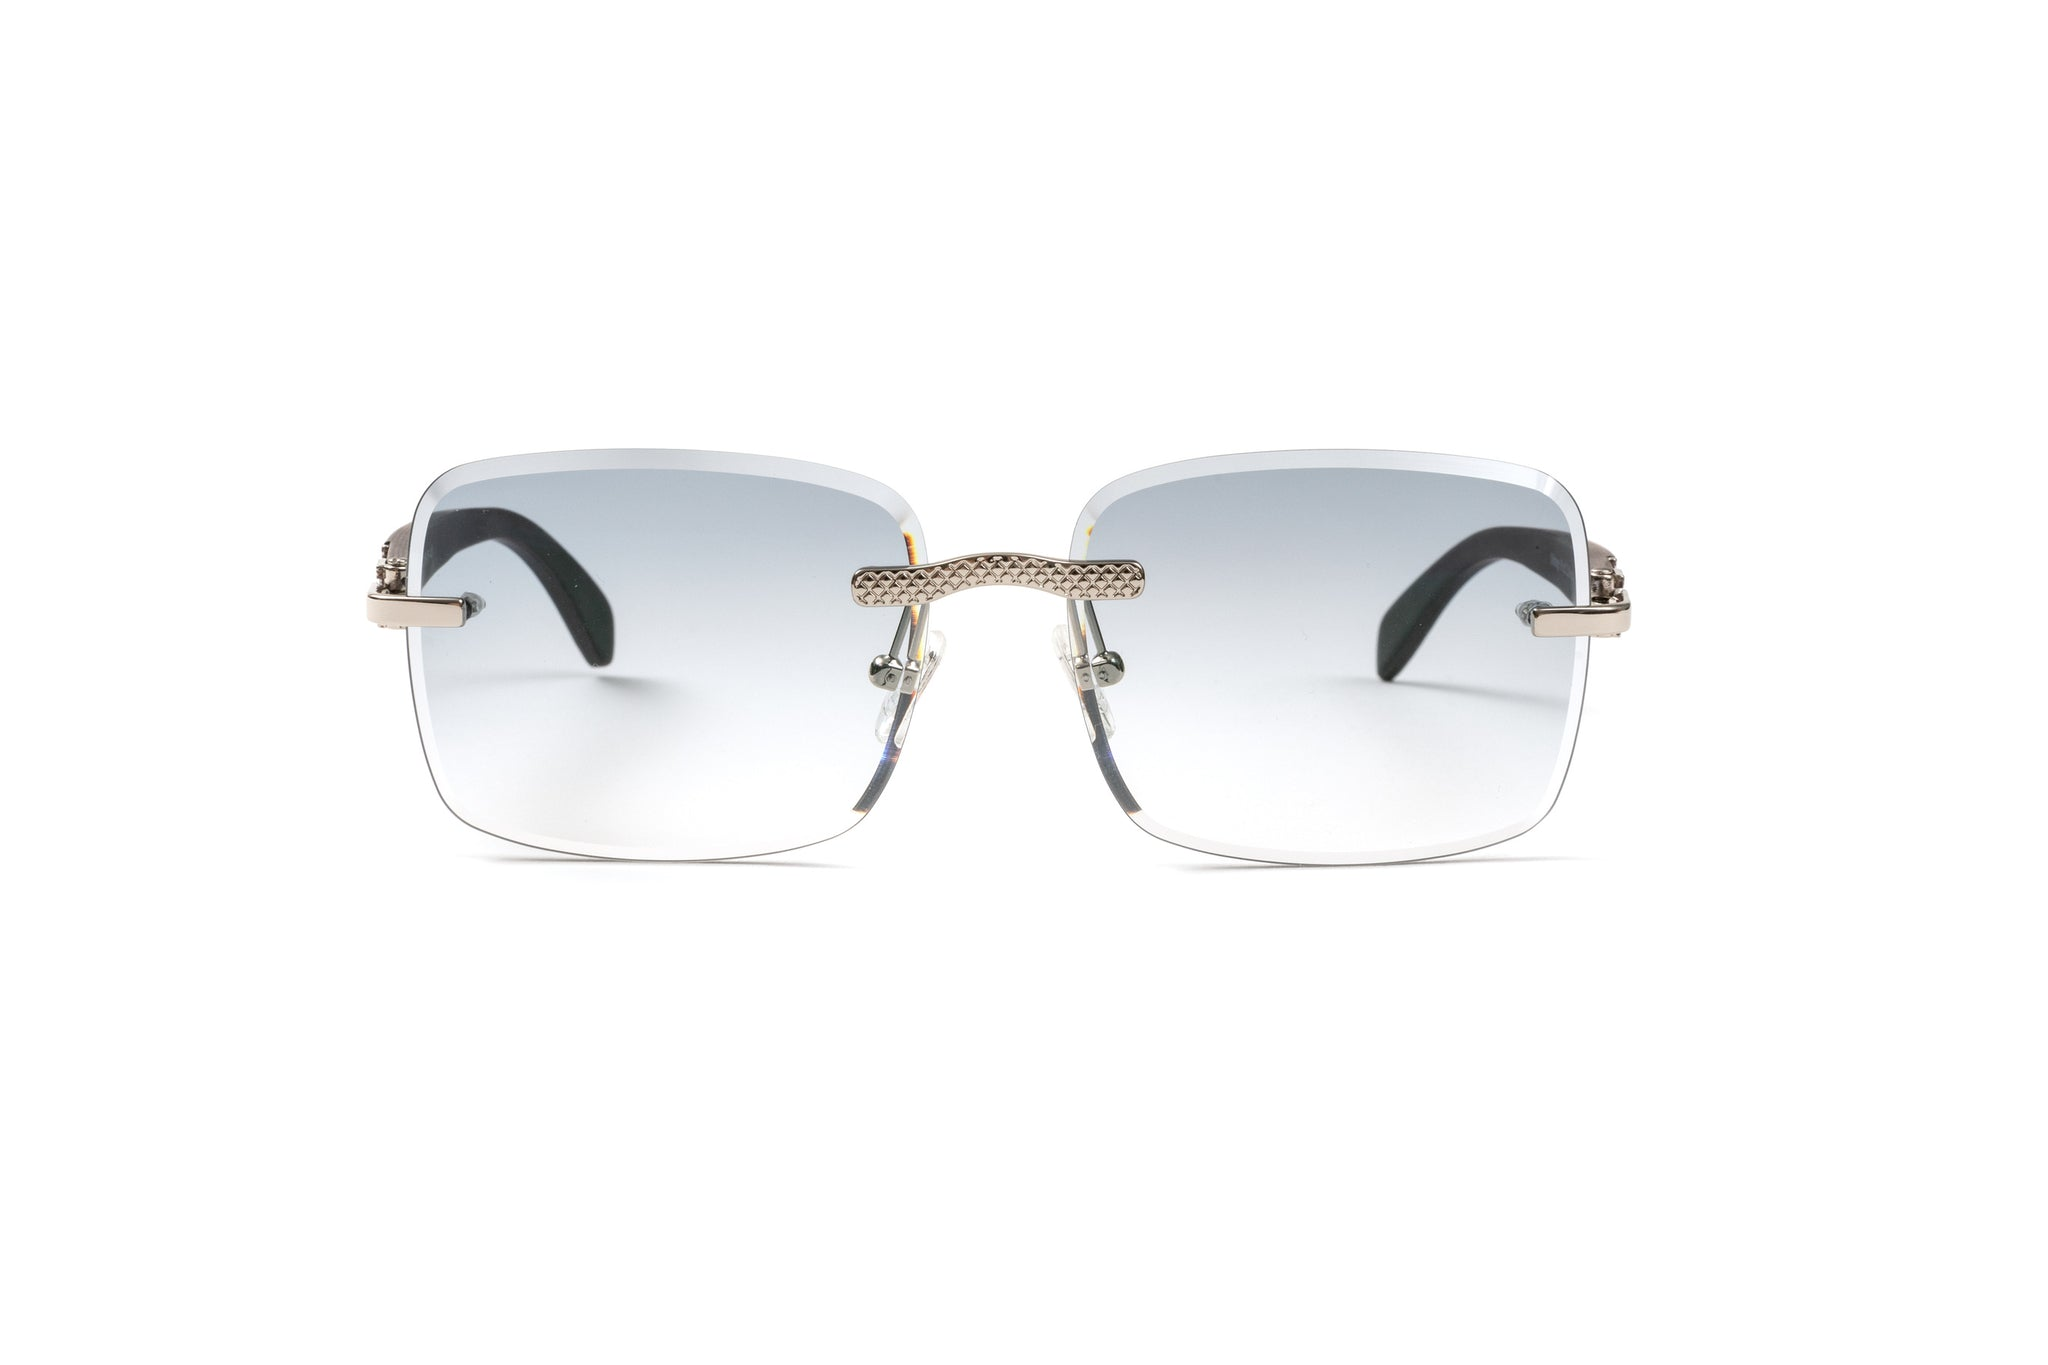 Rimless Drill Mount Mesh Frames, 18kt White Gold and Black Wood, Gradient Grey Anti Reflective Bevel Lenses